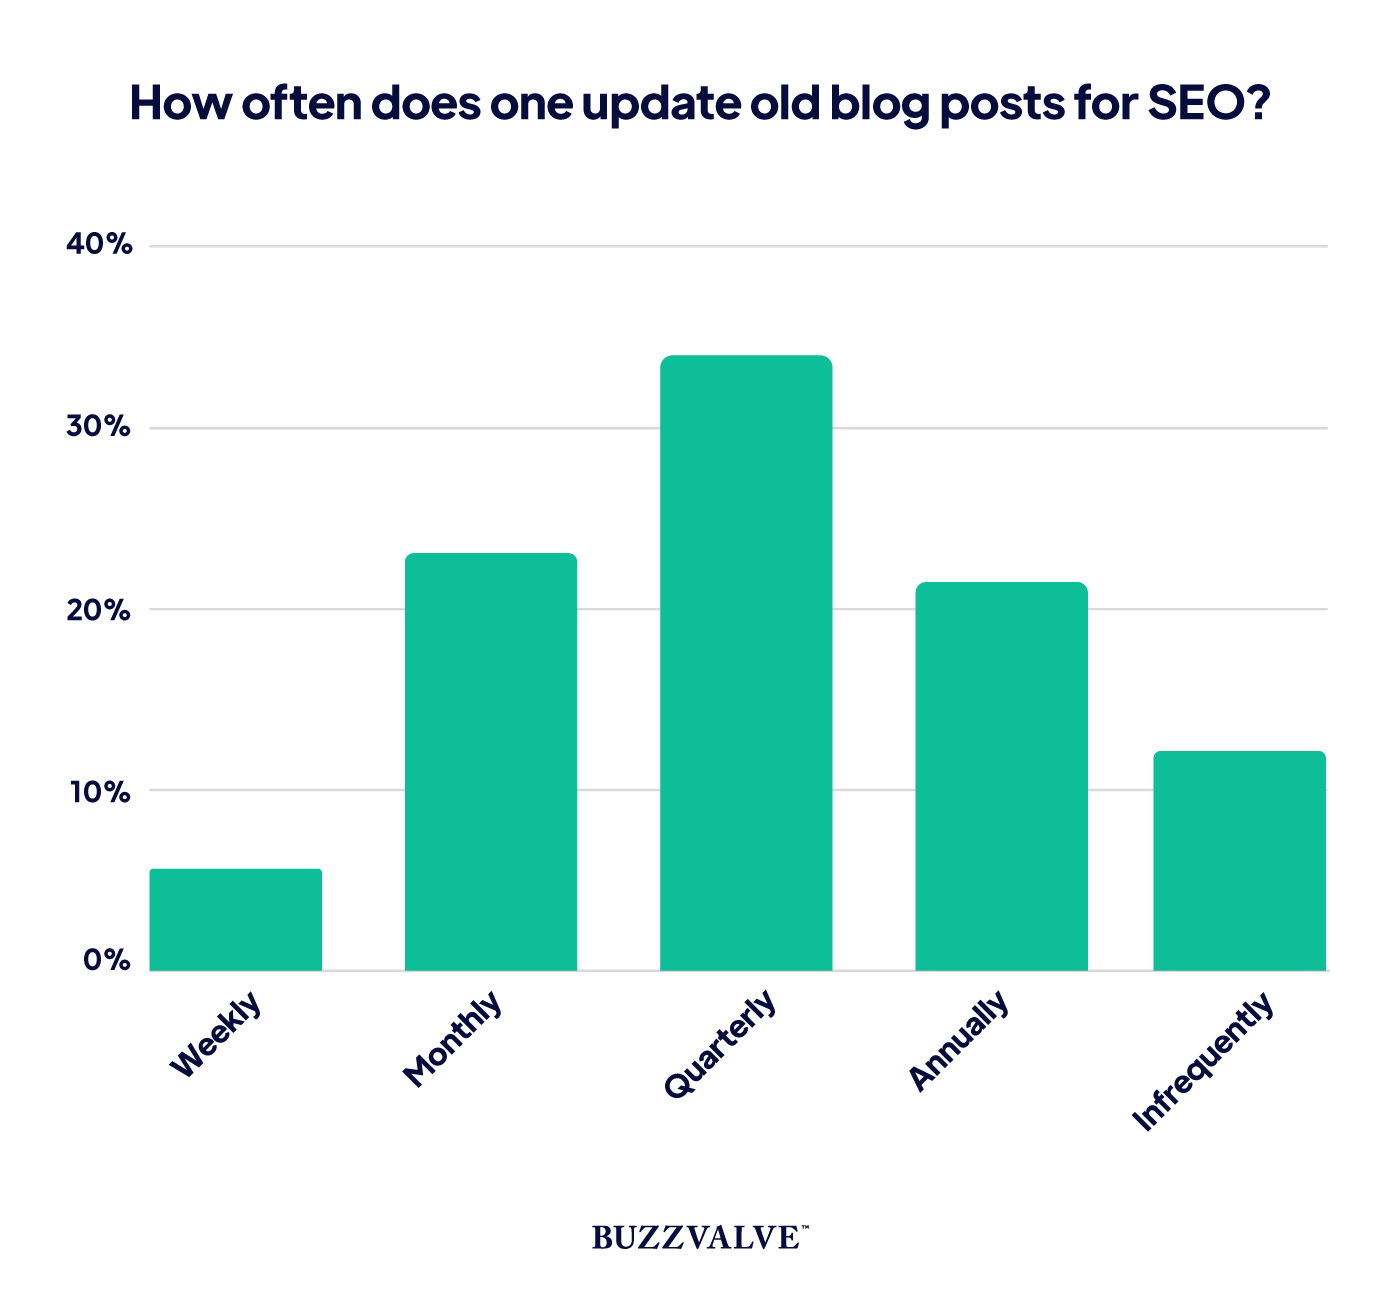 How often blog posts are updated for SEO